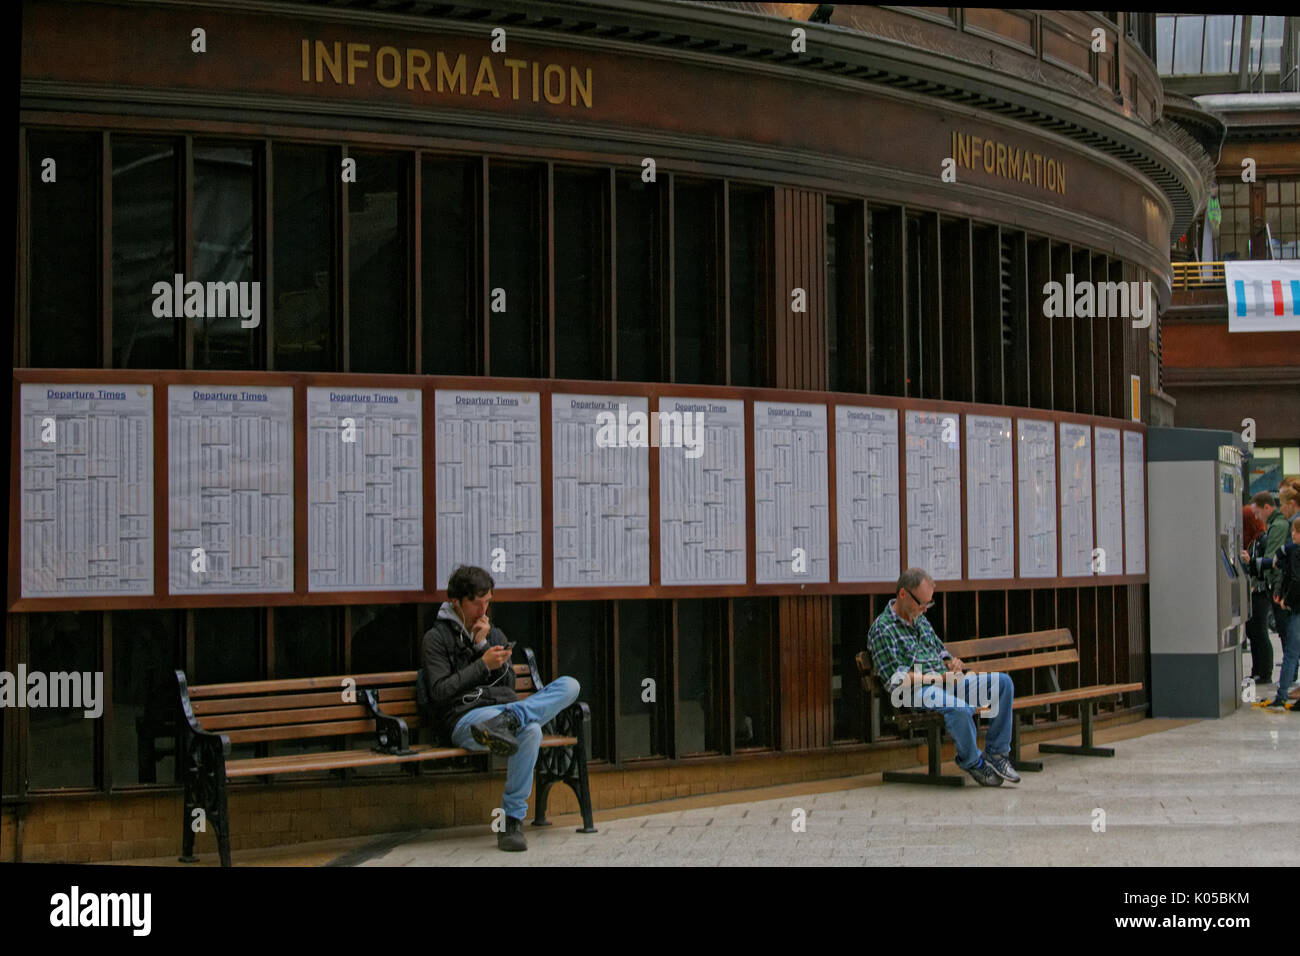 two men boys sitting on benches train time tables background using smart phone under wooden paneled information sign Glasgow central station concourse - Stock Image